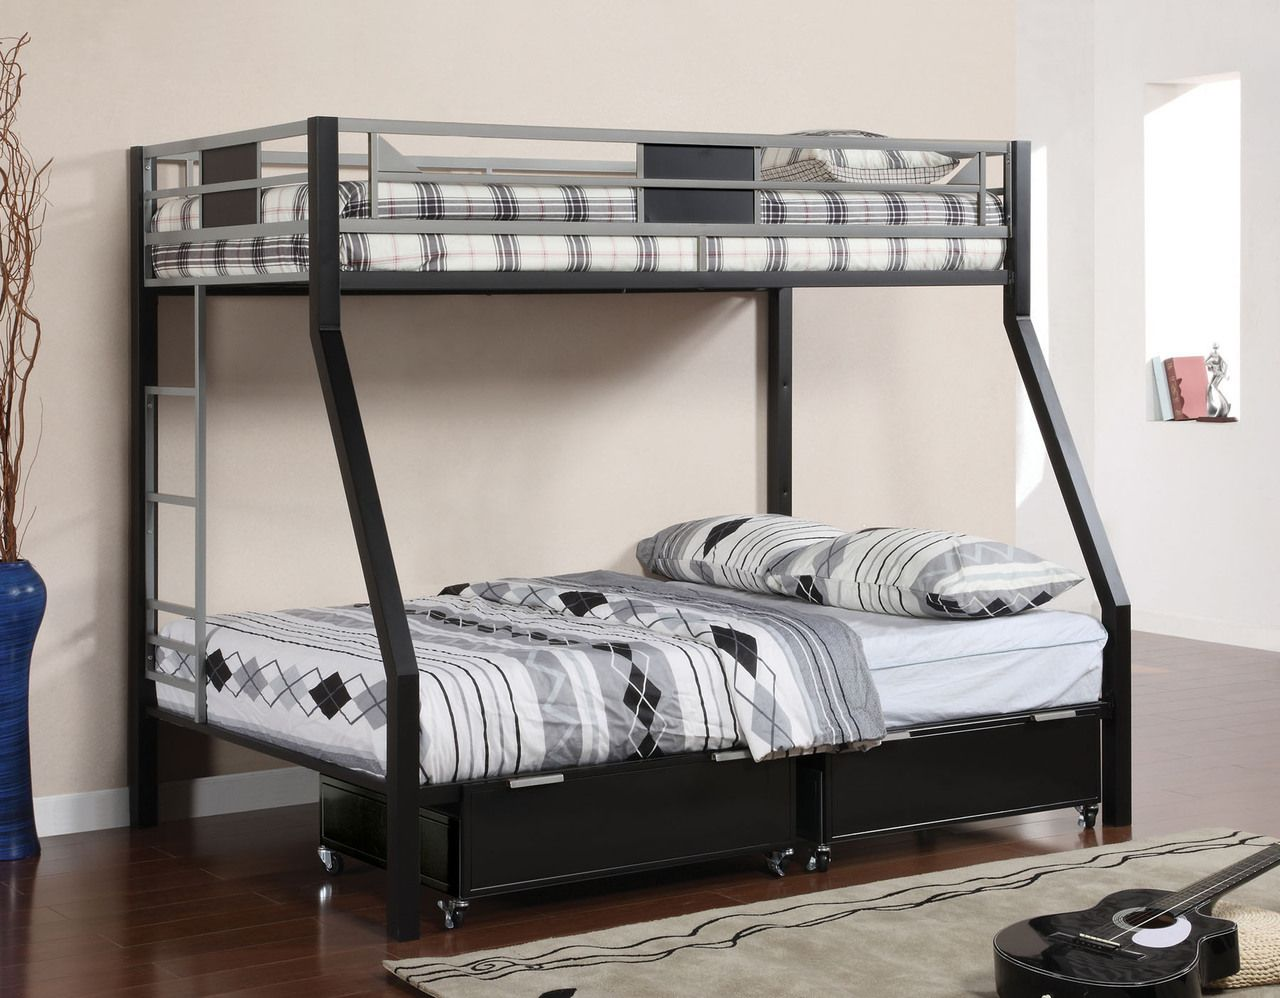 Macarthur Silver Black Twin Full Metal Bunk Frame Bunk Bed With